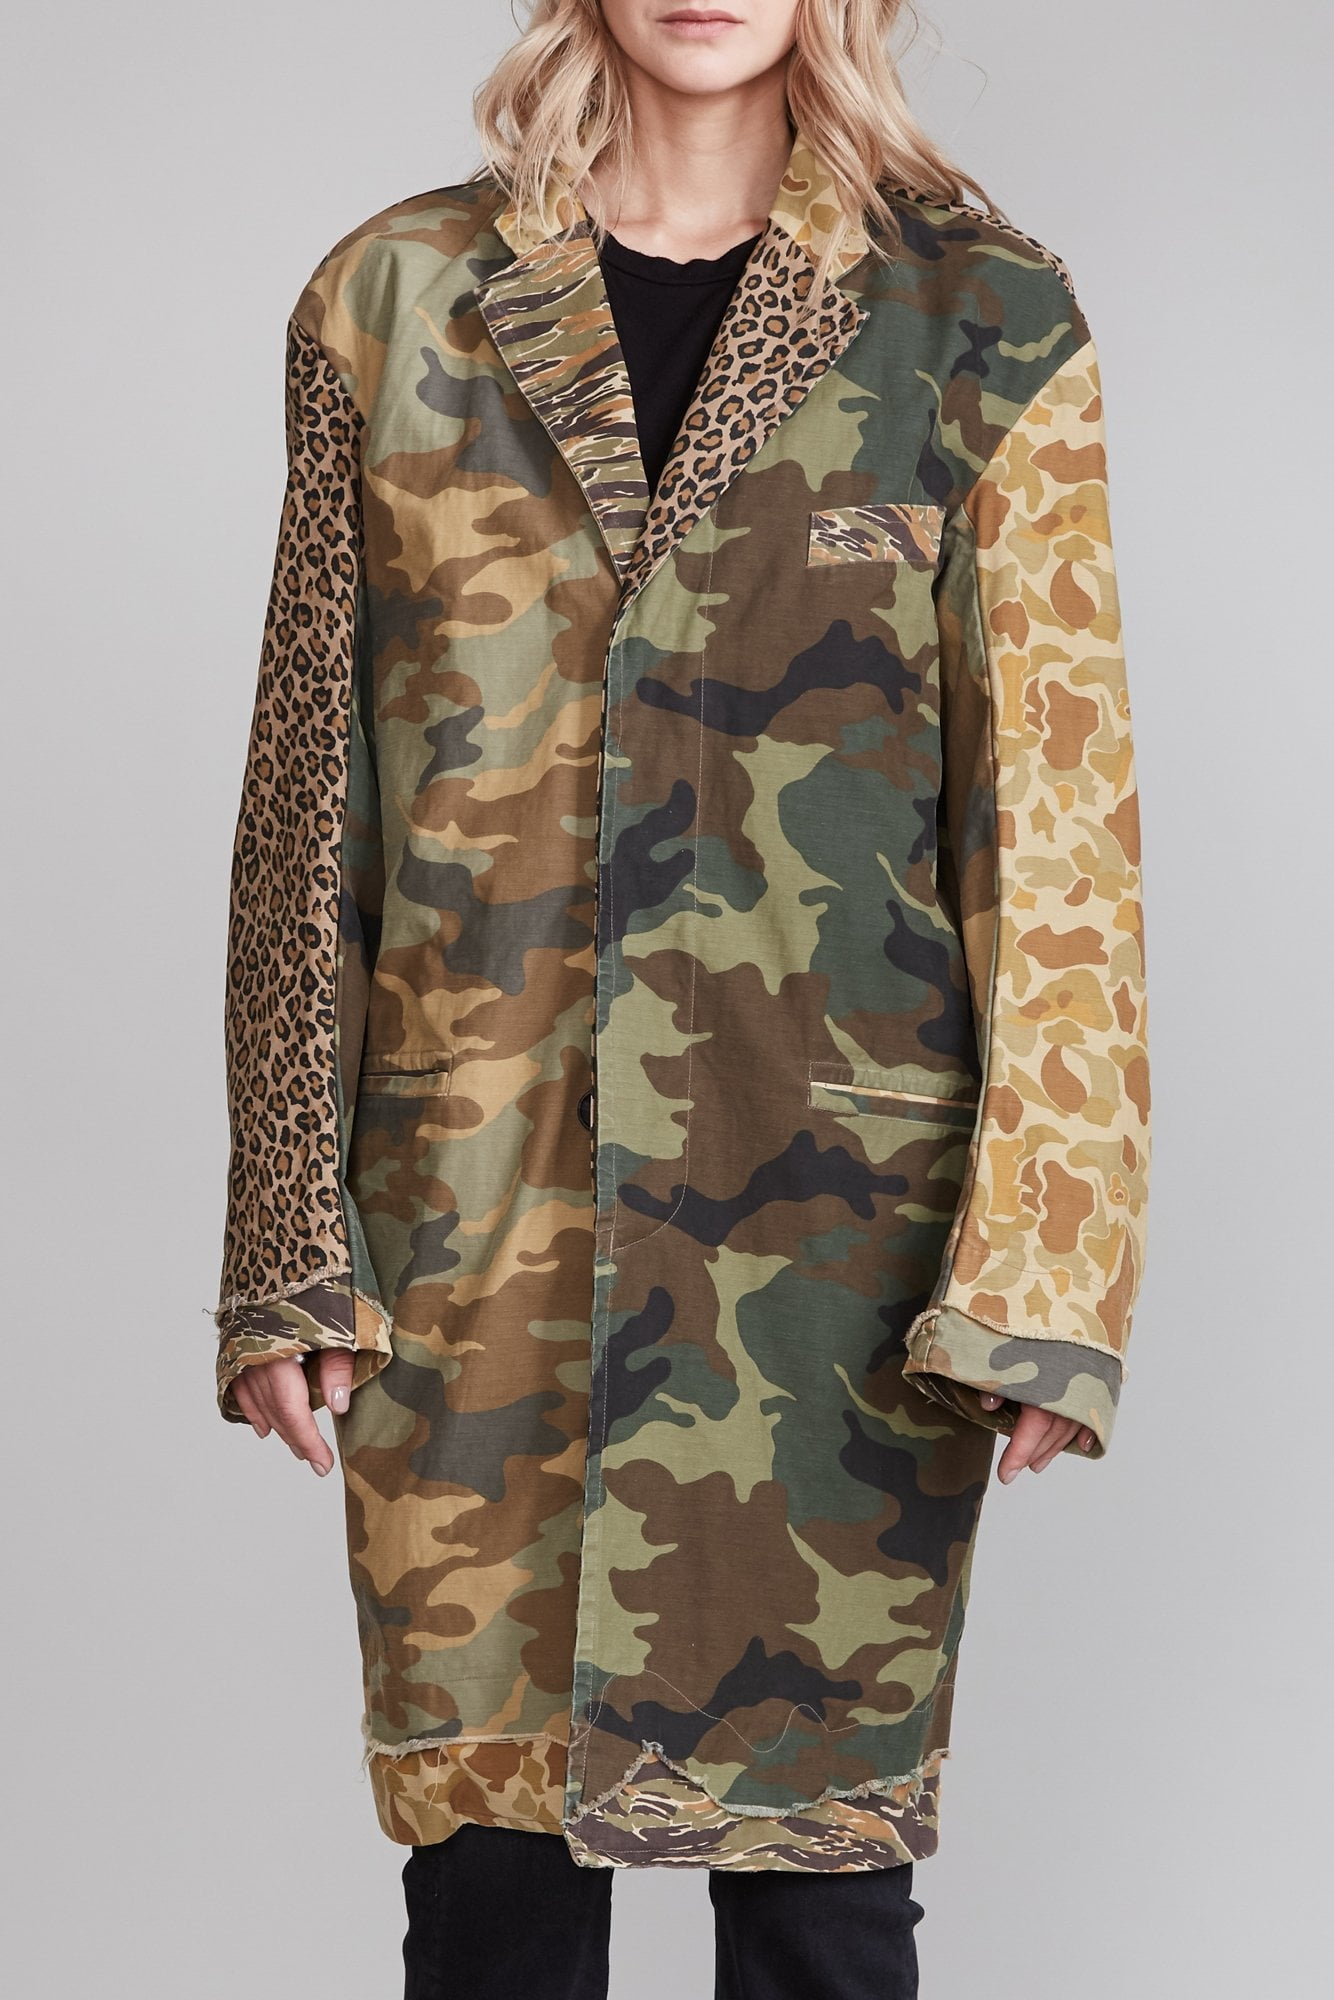 Shredded Coat - Multi Camo